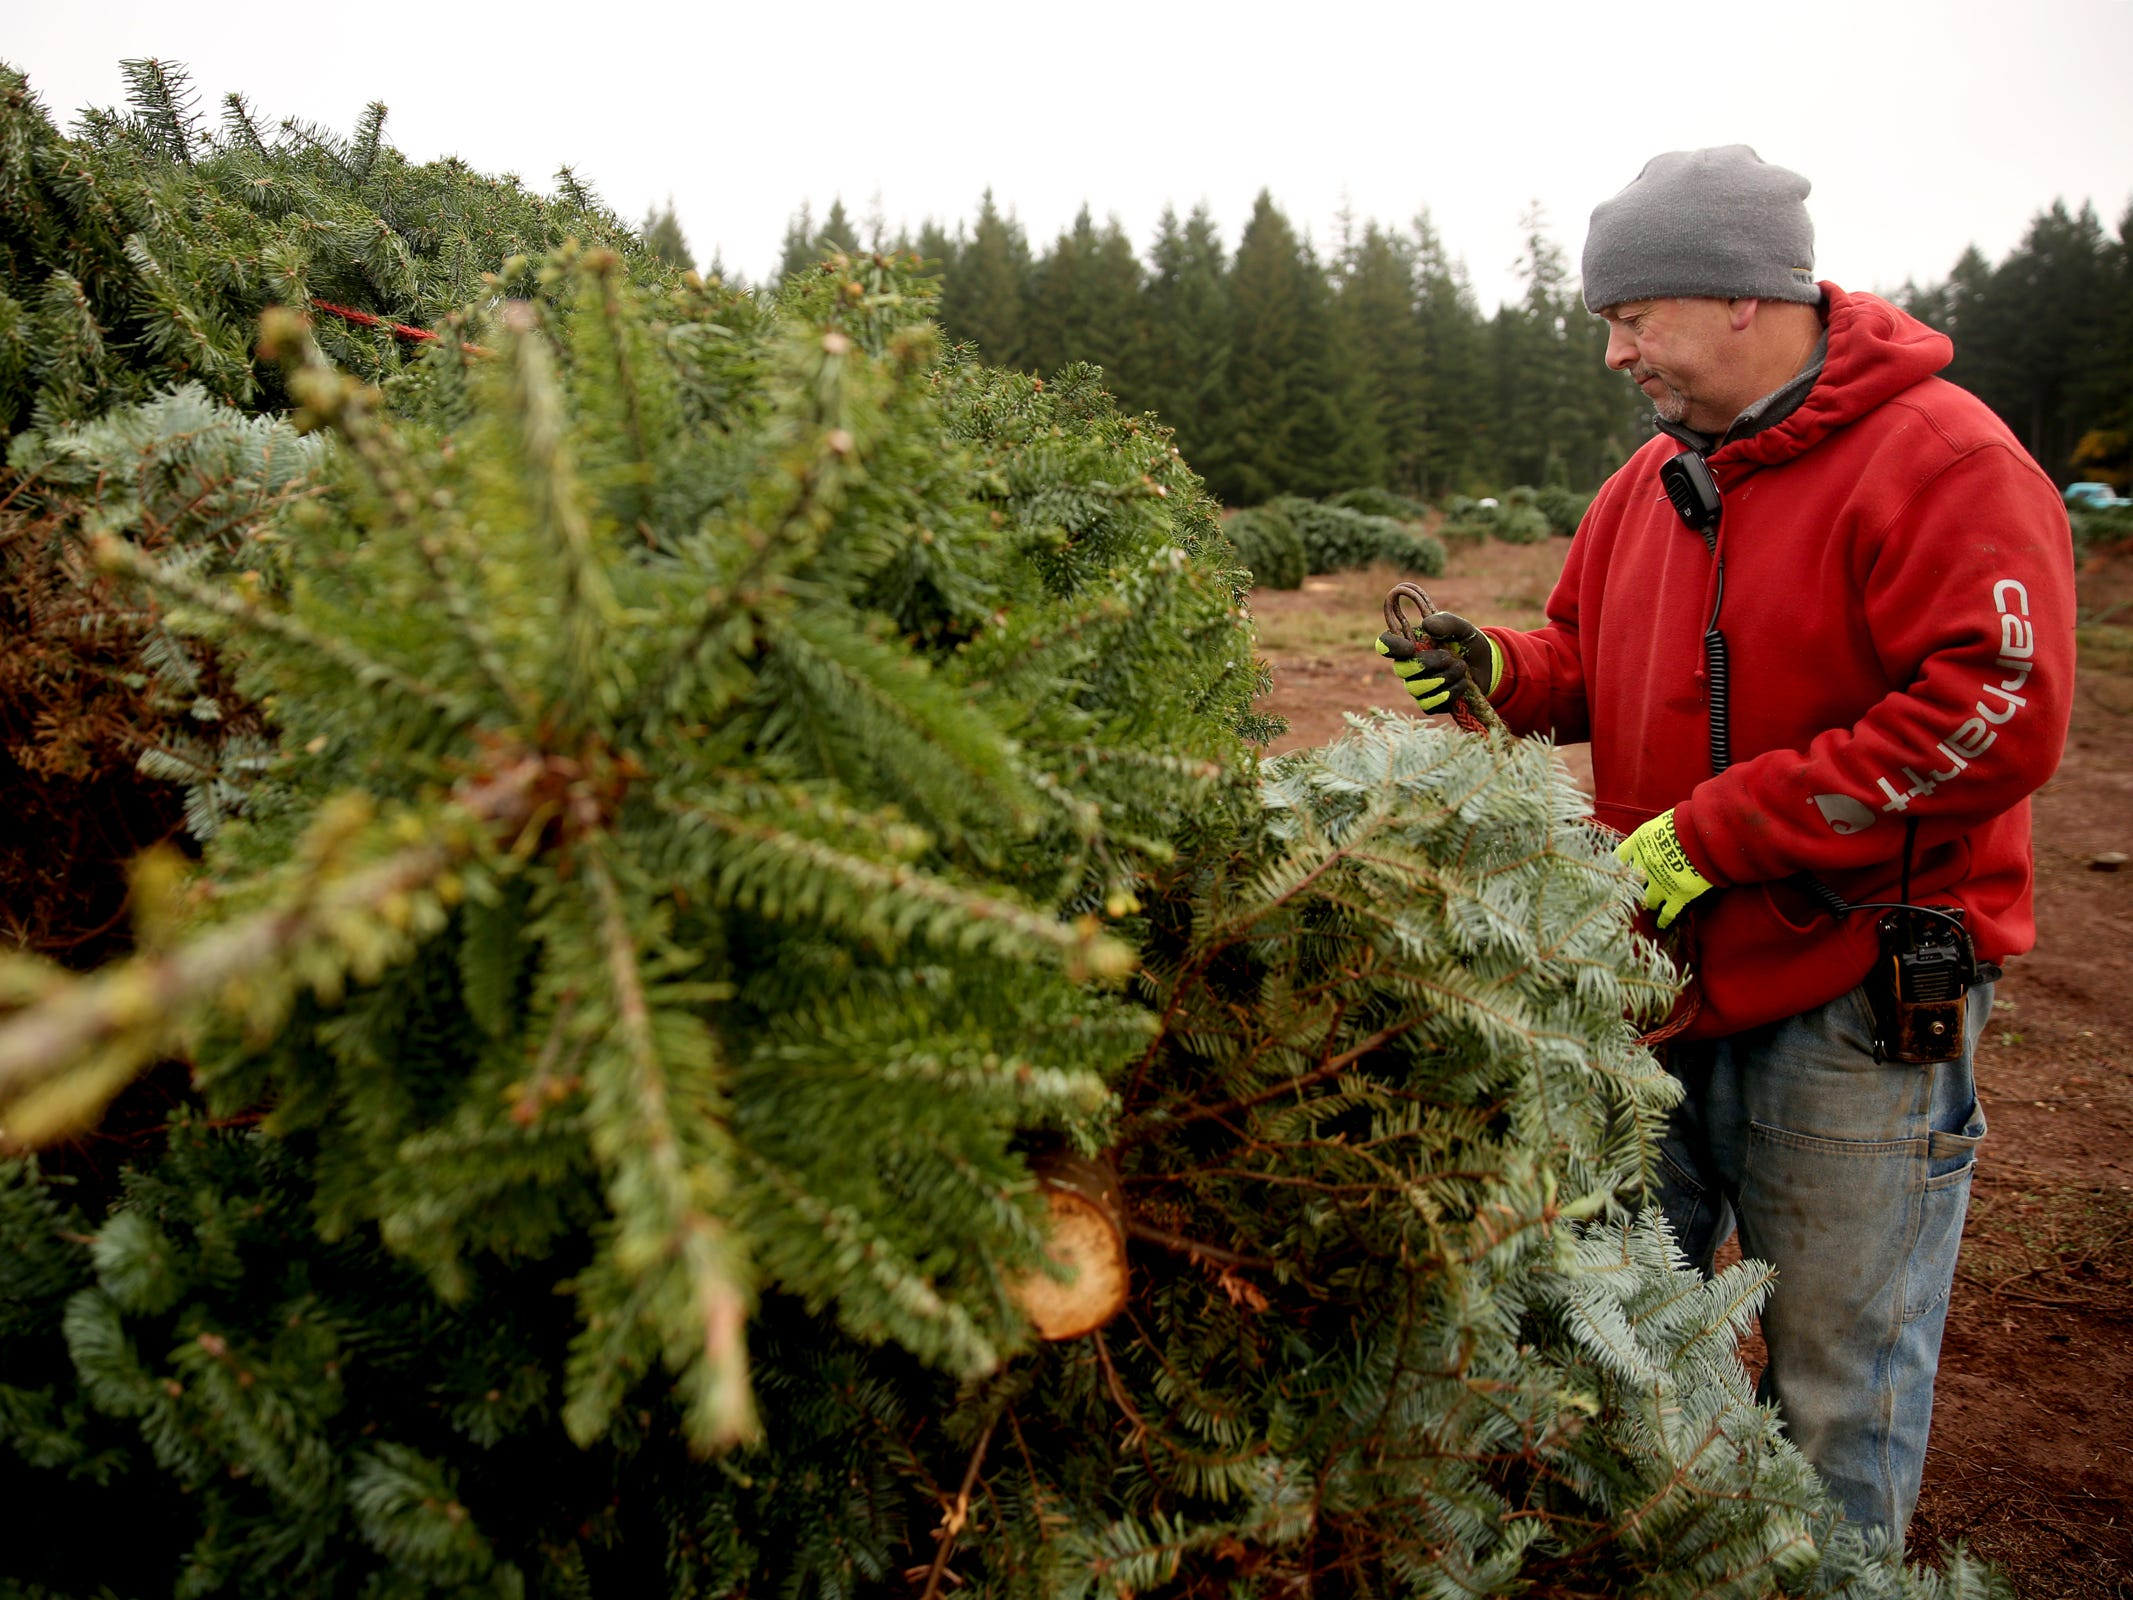 Jan Hupp looks over a pile of Christmas trees that have been  harvested and are being prepped for delivery at Hupp Farms near Silverton on Monday, Nov. 5, 2018.